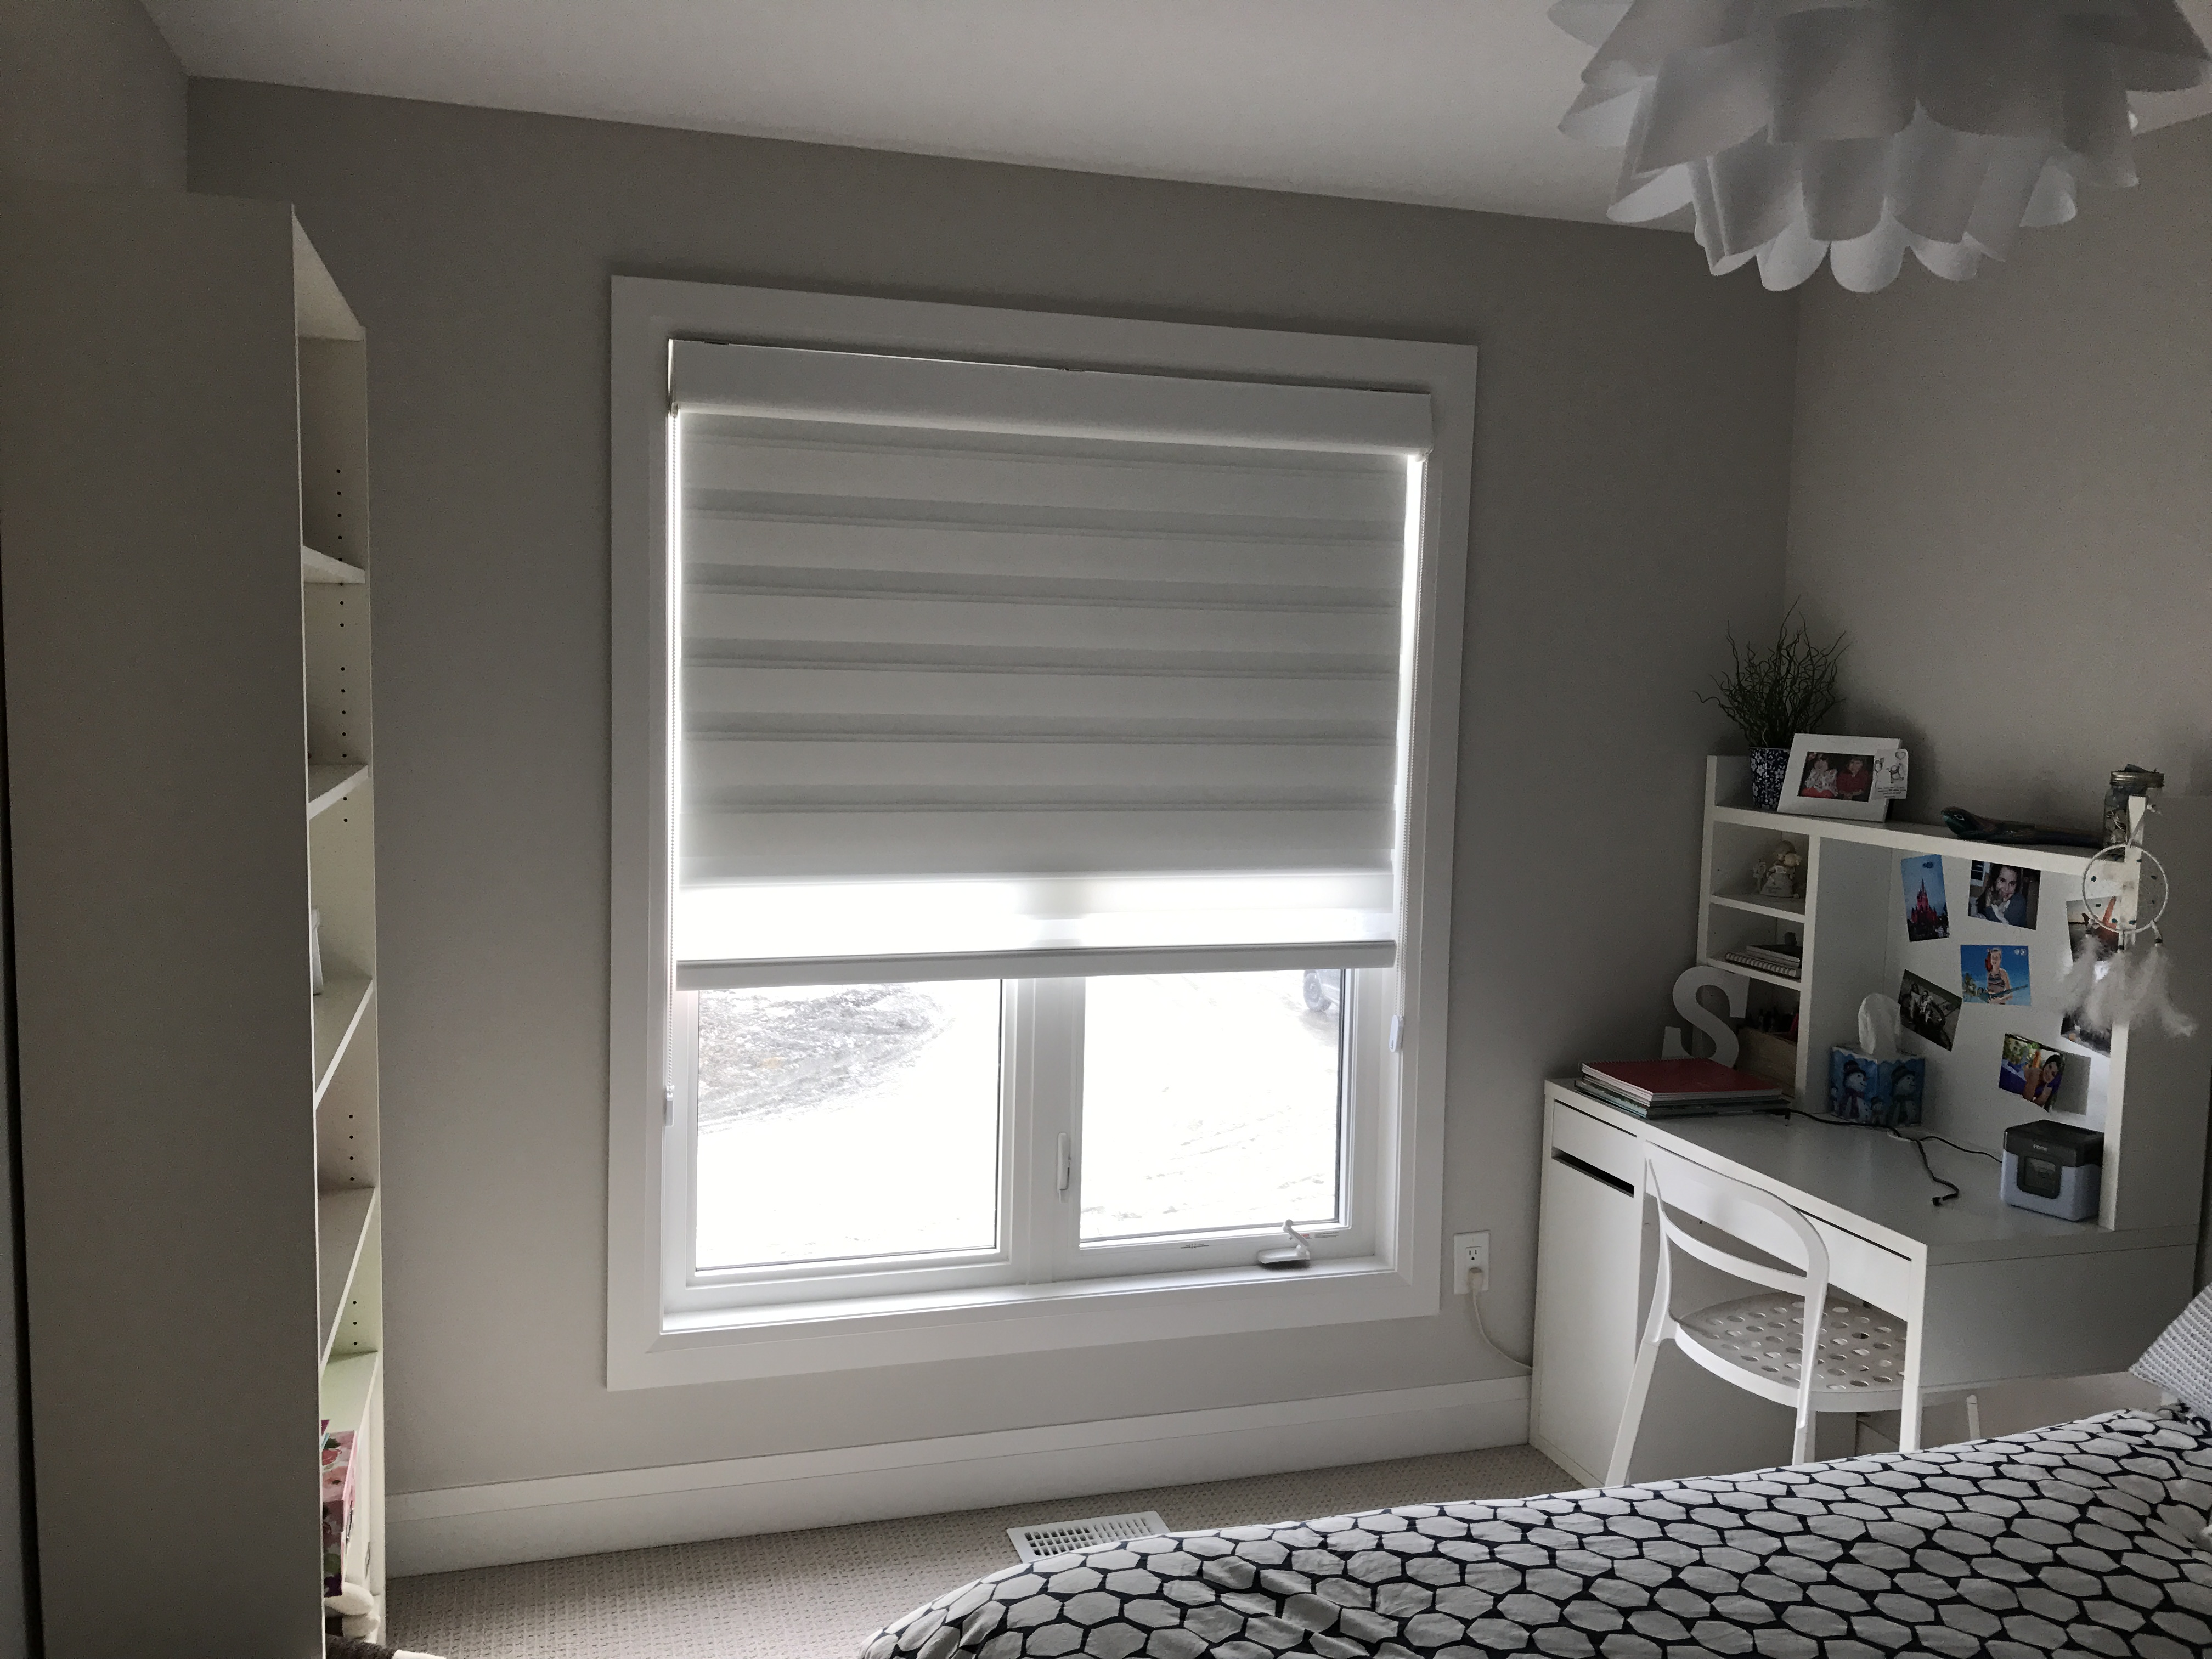 living blinds uk graber panel window rollers cellular automated over doors patio levolor levelor accordia motorized lowes mb shutters solar roller menards awful fold bi vertical powered fording reviews sunscreen room in shades